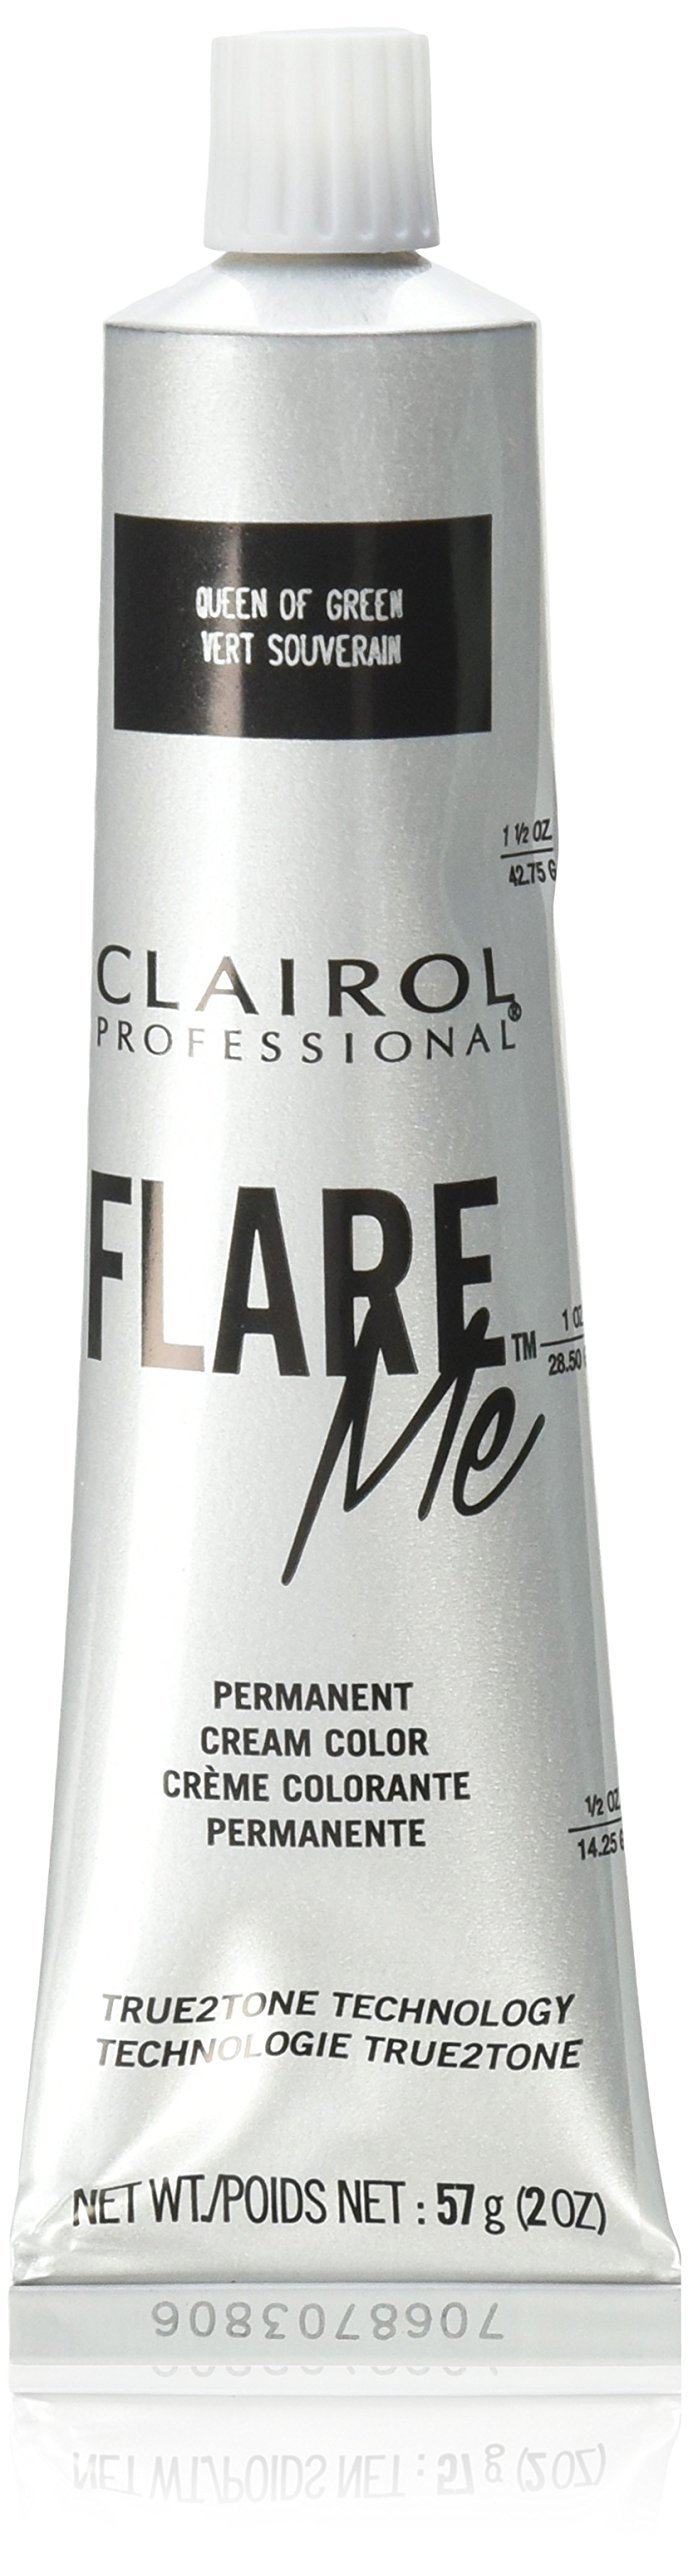 Clairol Professional Flare Me Queen of Green, 2 Ounce